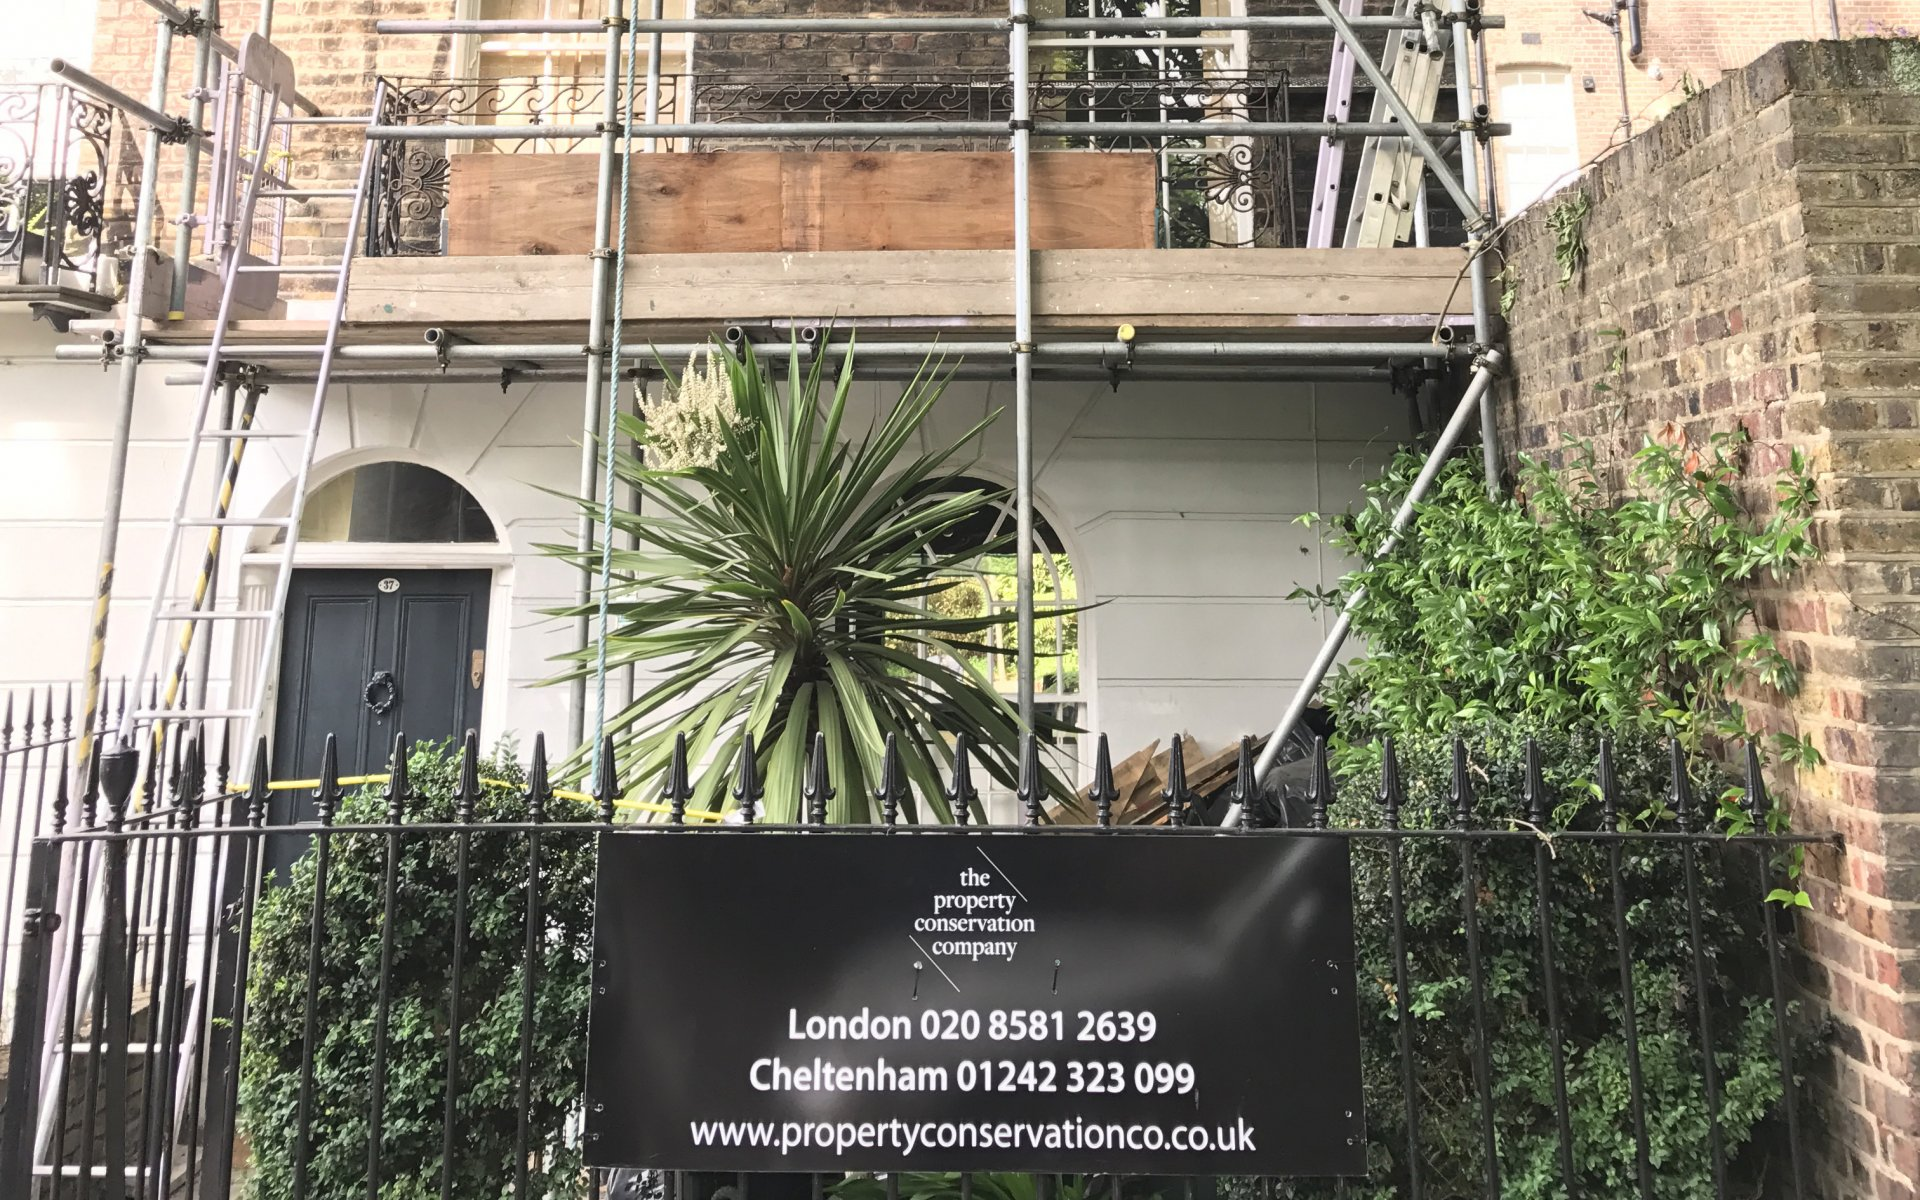 Complete external renovation of a Grade II listed building in Islington